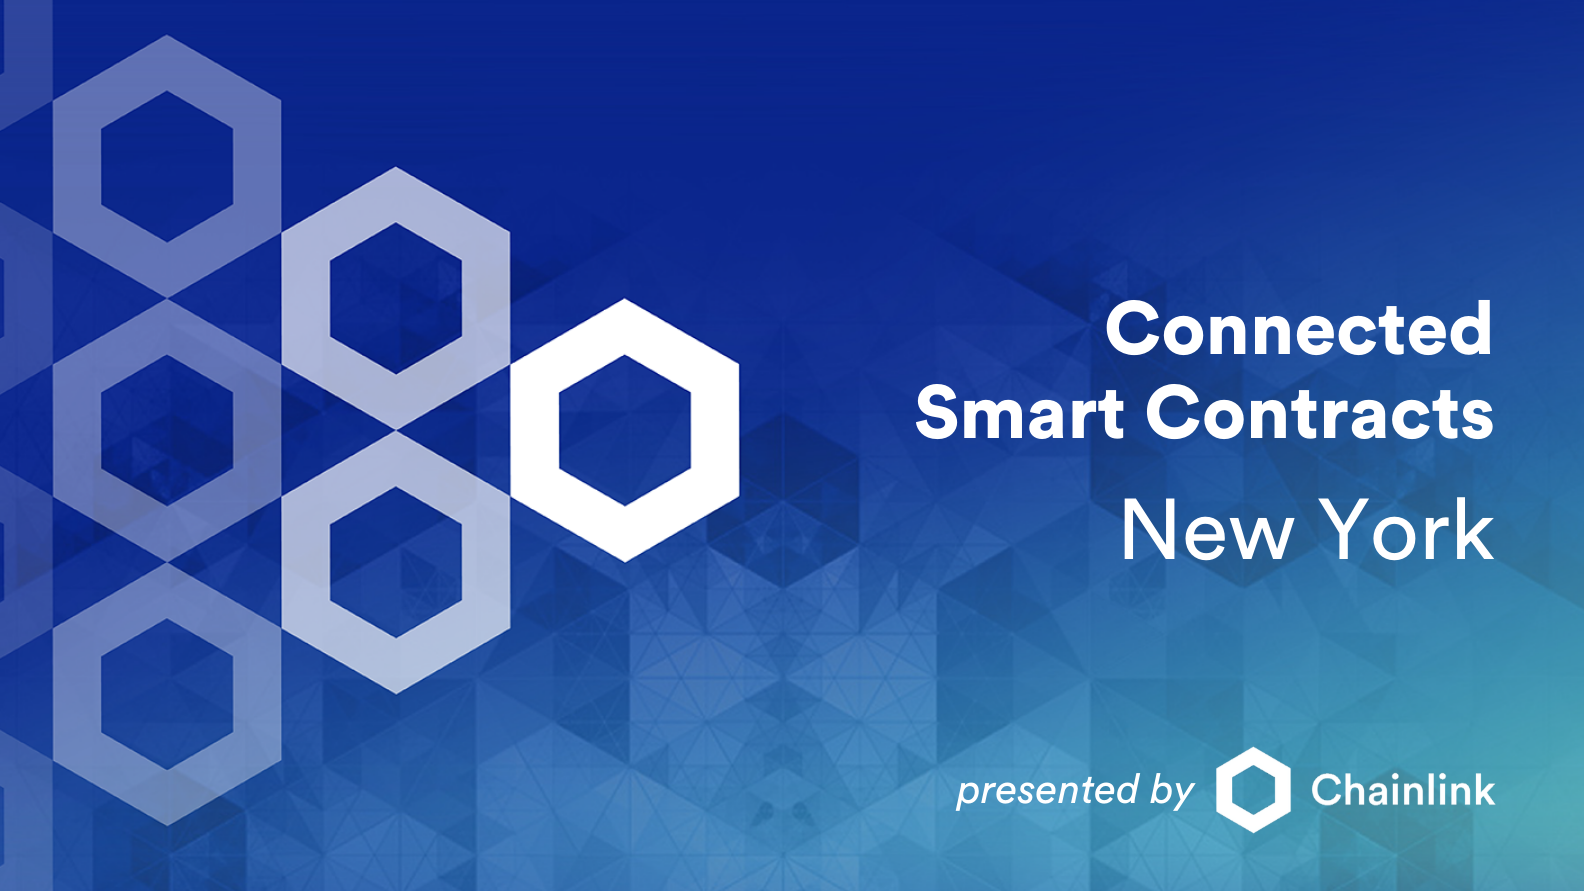 Chainlink New York: Connected Smart Contracts